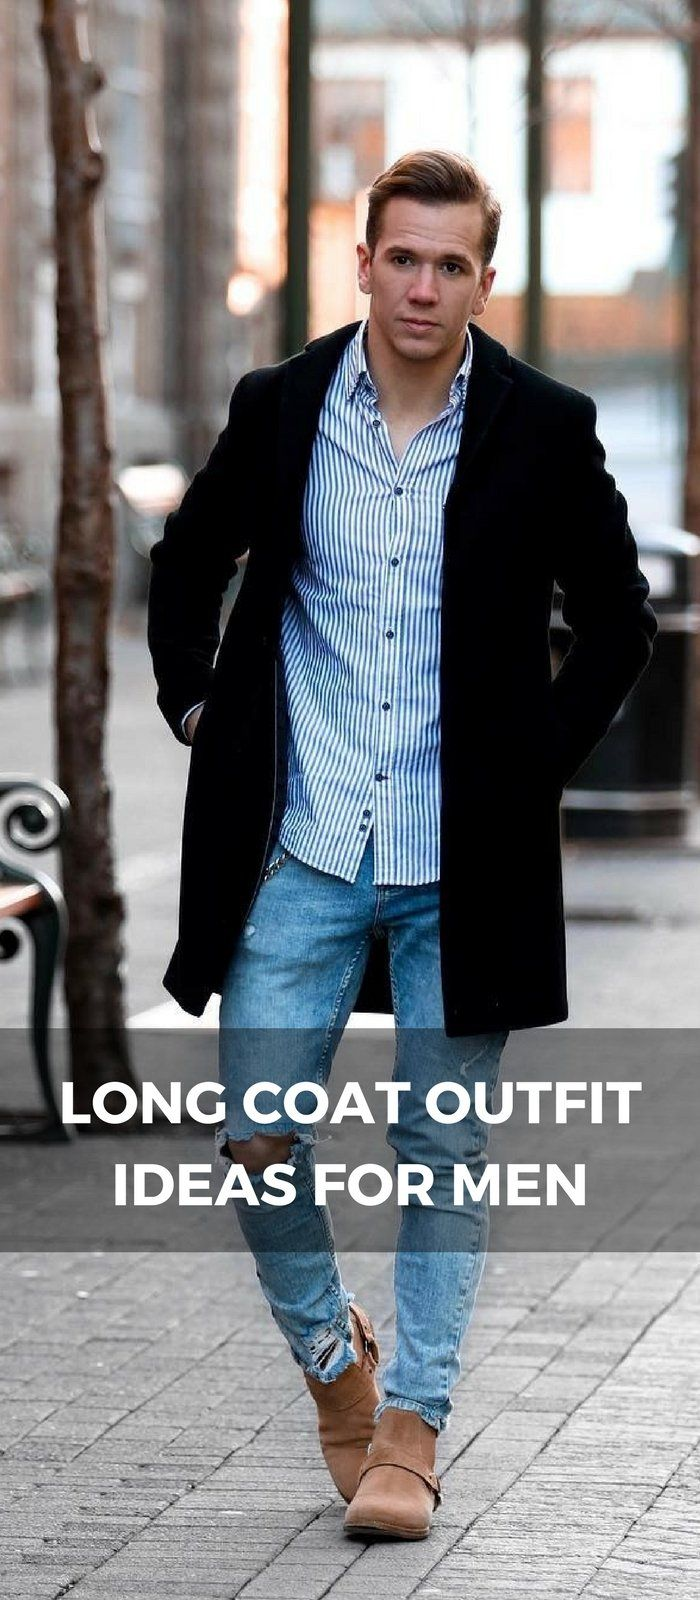 9 Coolest Ways To Wear Long Coat For Men – LIFESTYLE BY PS